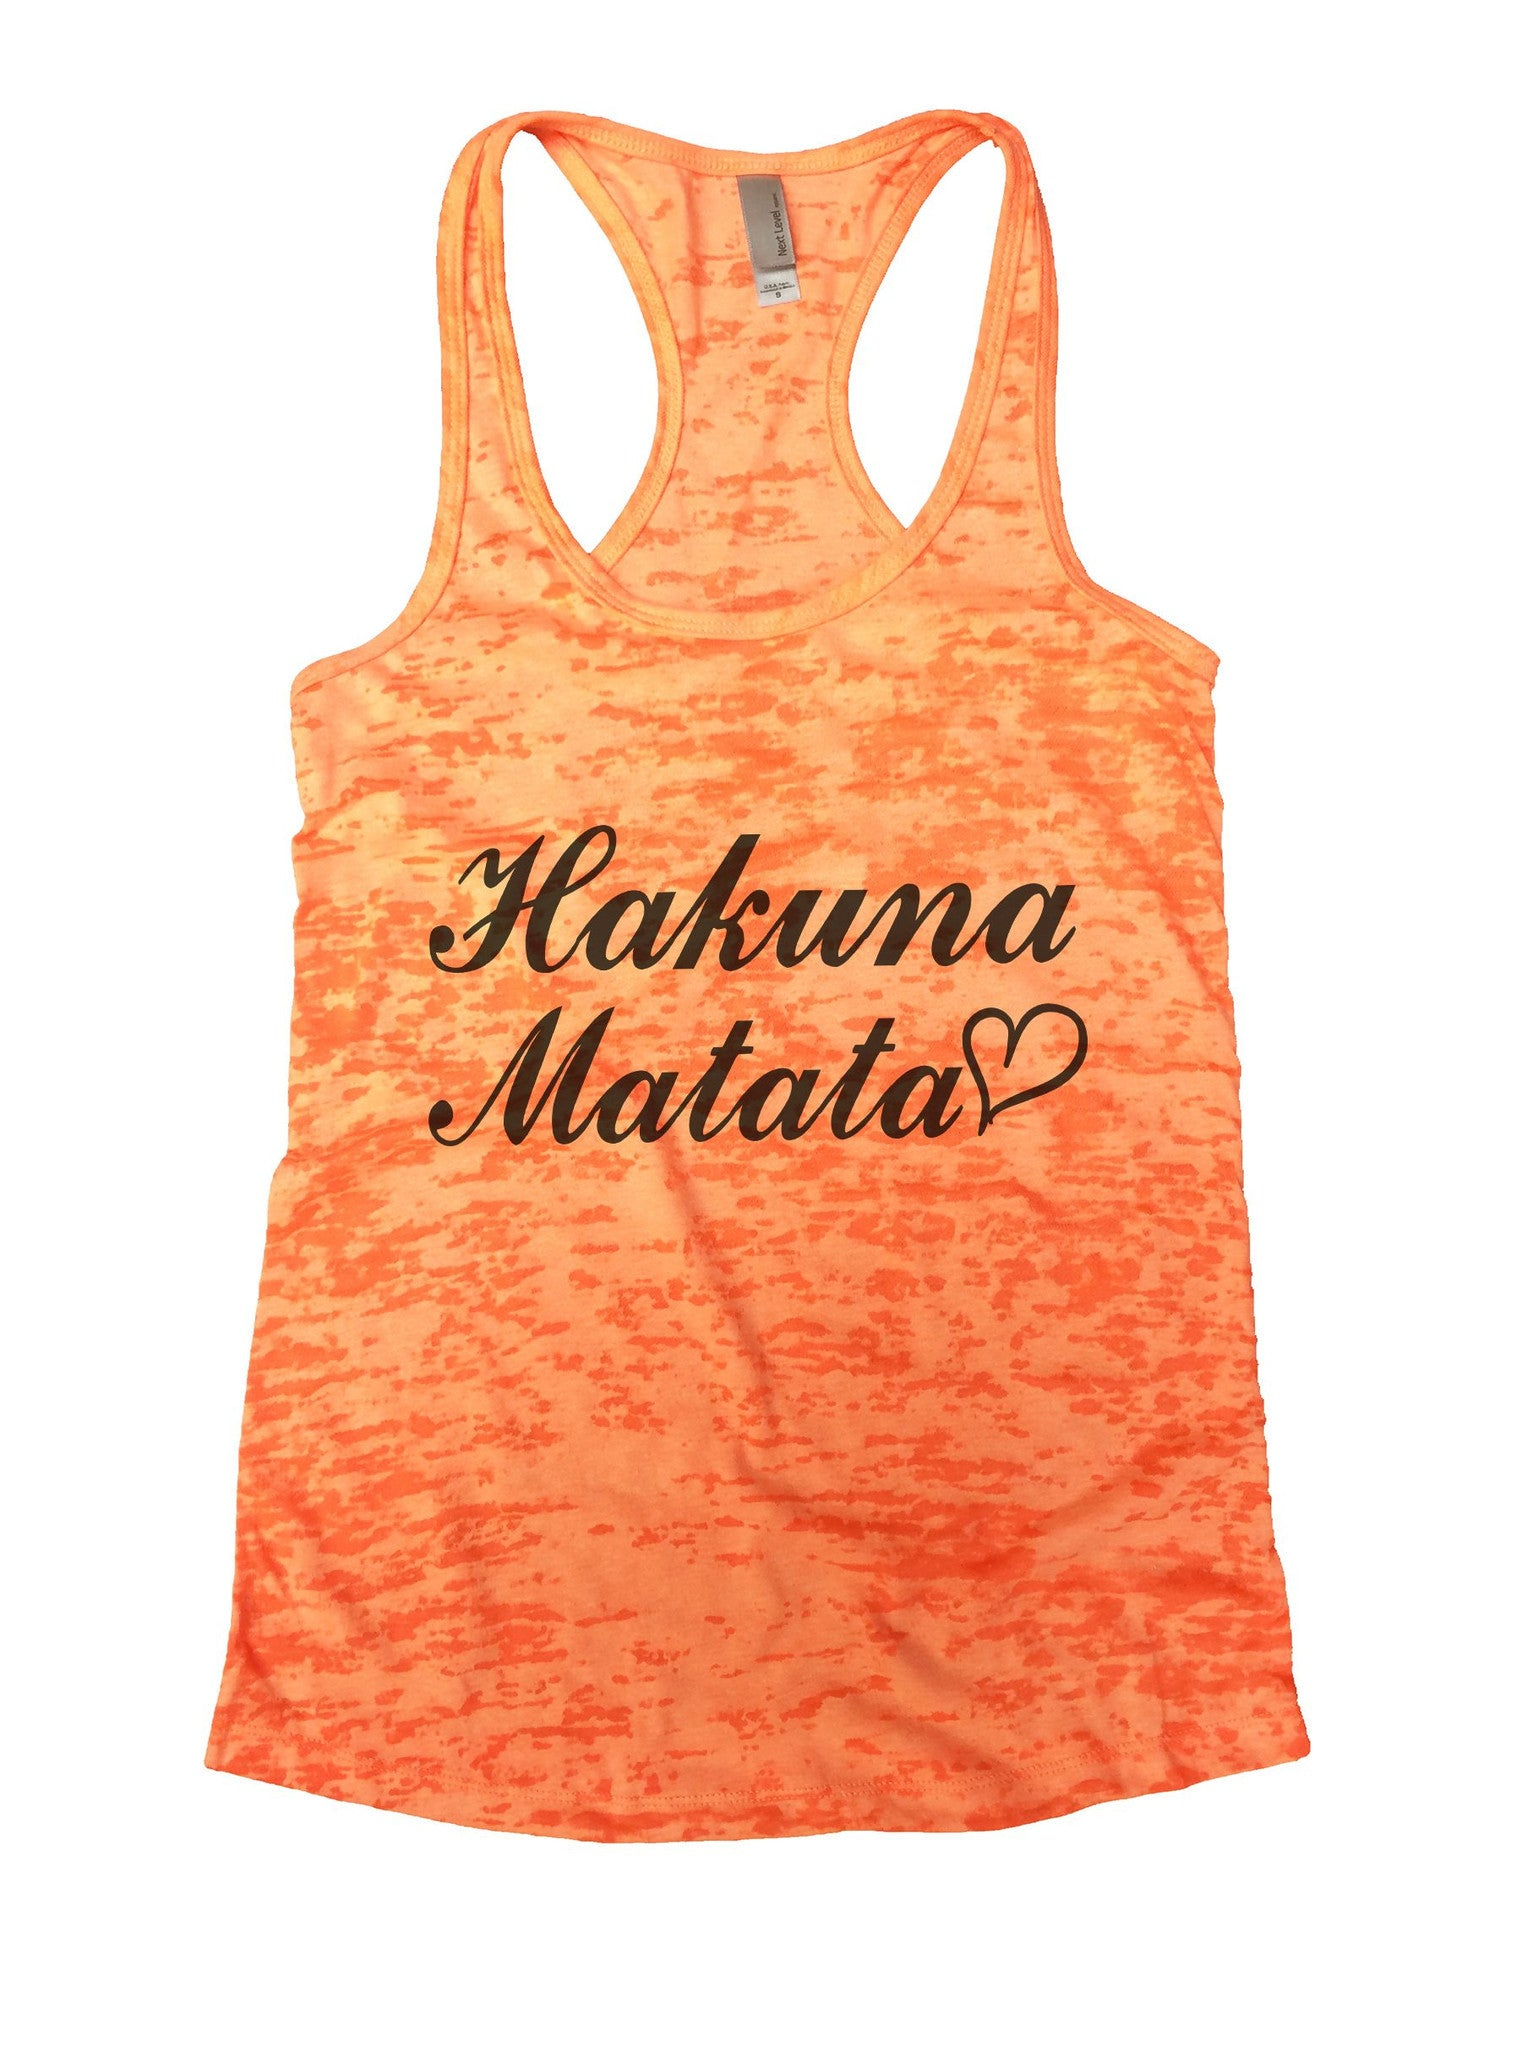 Hakuna Matata Burnout Tank Top By BurnoutTankTops.com - 937 - Funny Shirts Tank Tops Burnouts and Triblends  - 5